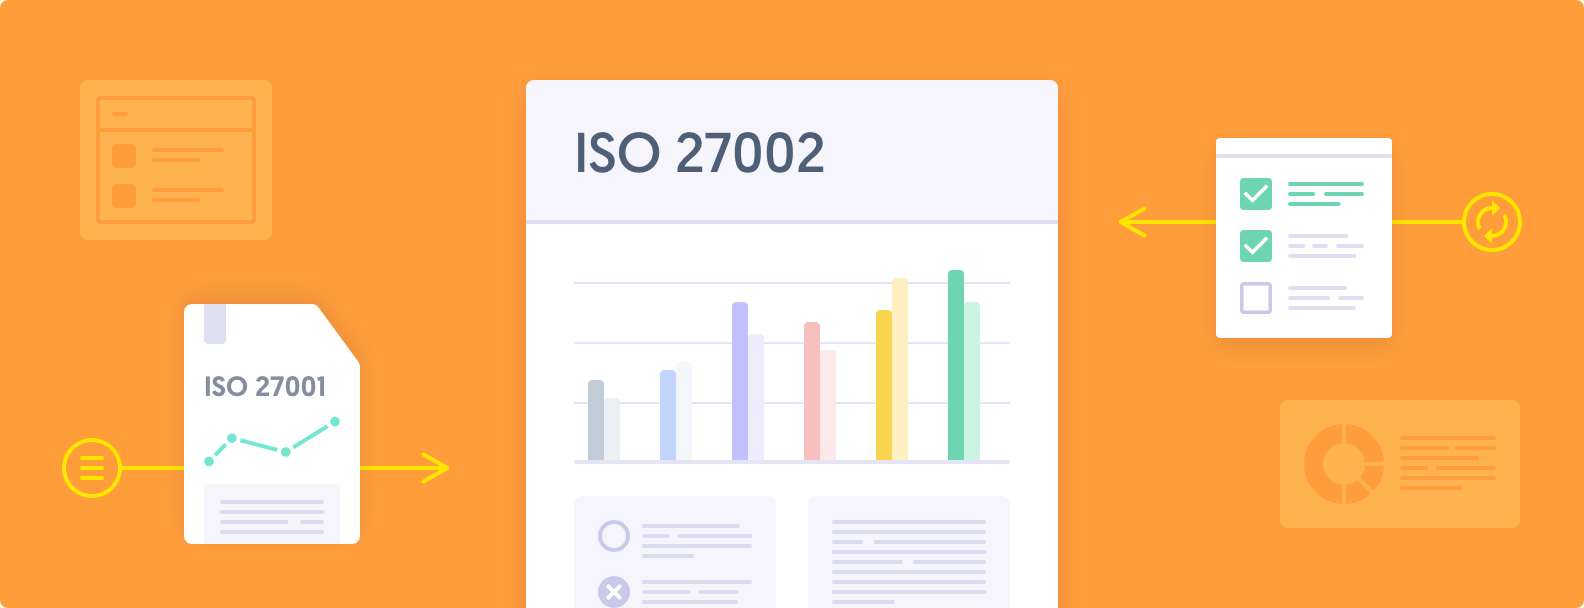 ISO 27002 is going through a major revision: What this means for companies' ISO 27001 certifications